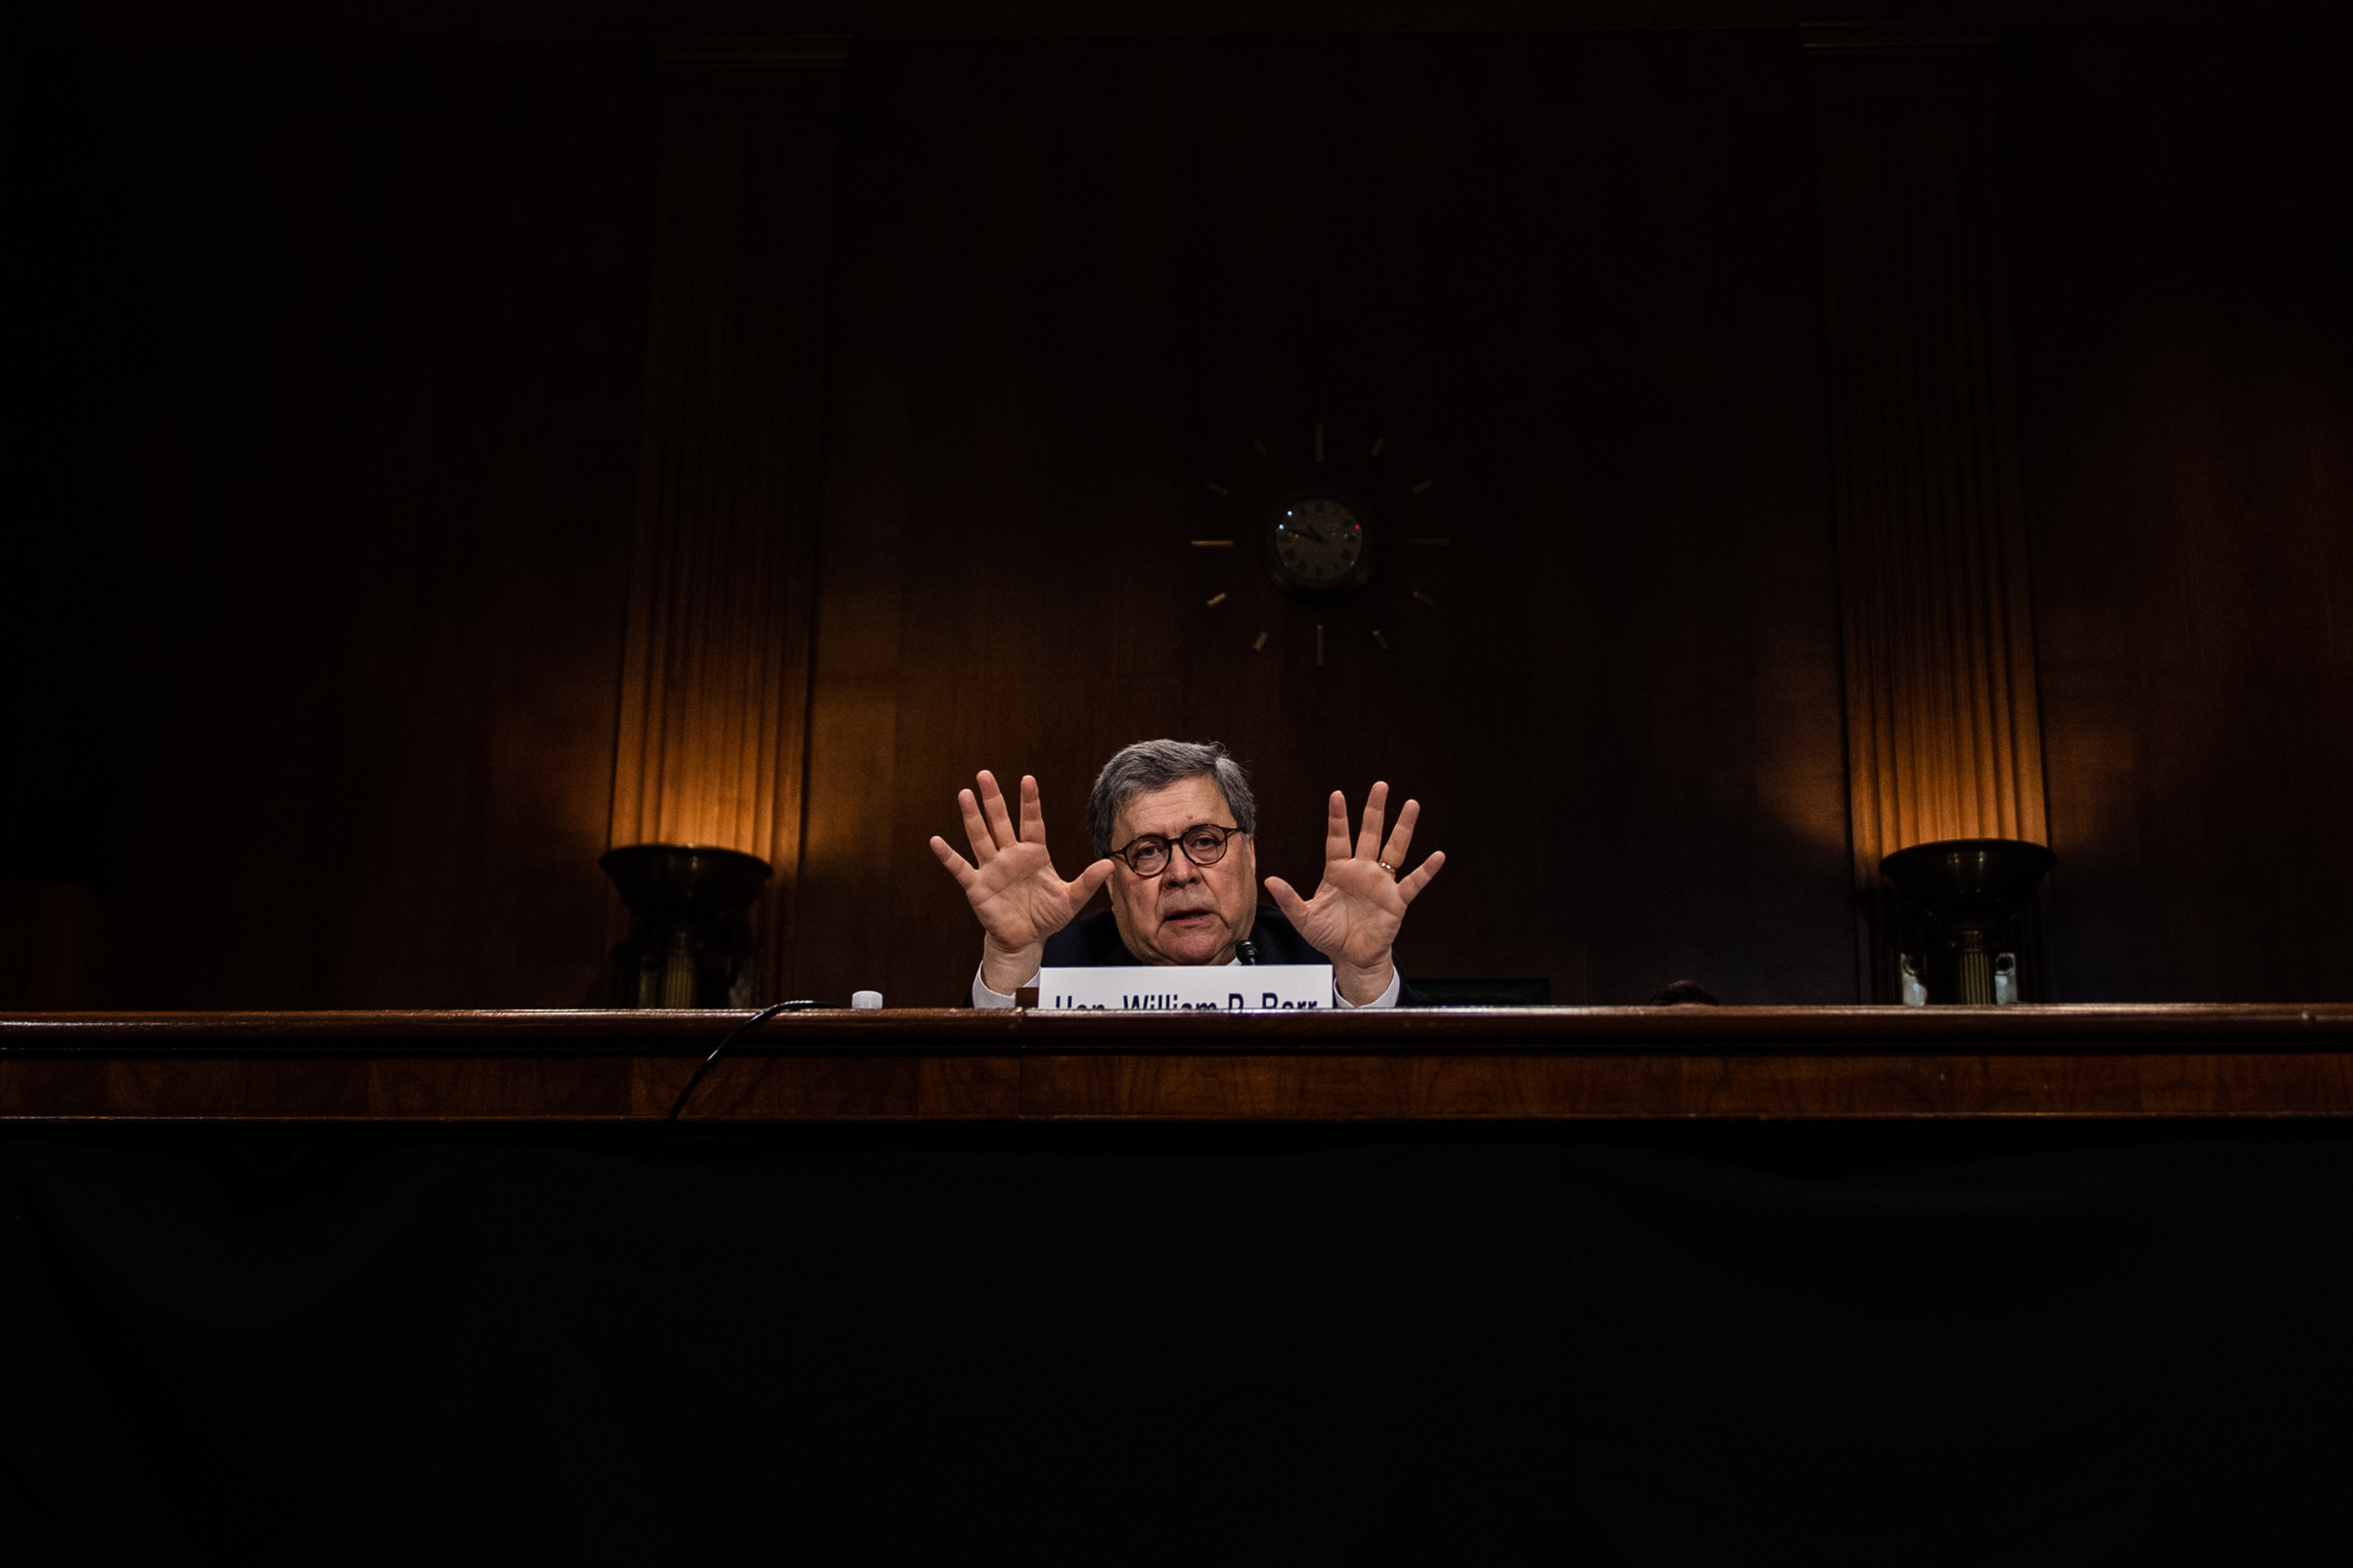 Attorney General William Barr testifies before the Senate Judiciary Committee on Capitol Hill on May 1, 2019, in Washington, D.C.